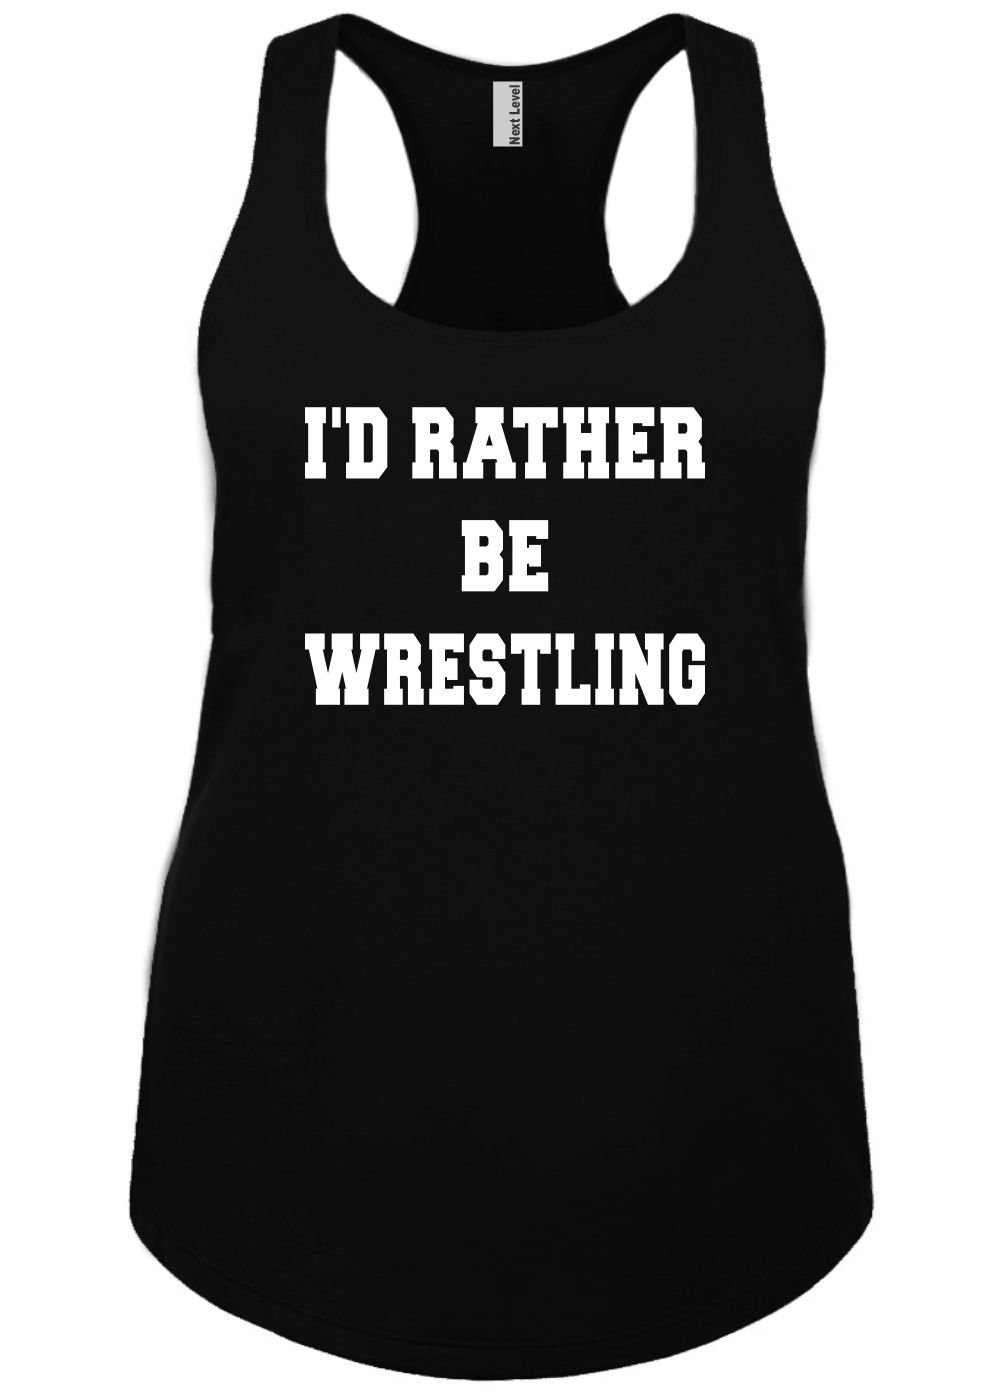 Mighty Ambitious Ladies Funny Tank Top ID Rather Be Wrestling 2X